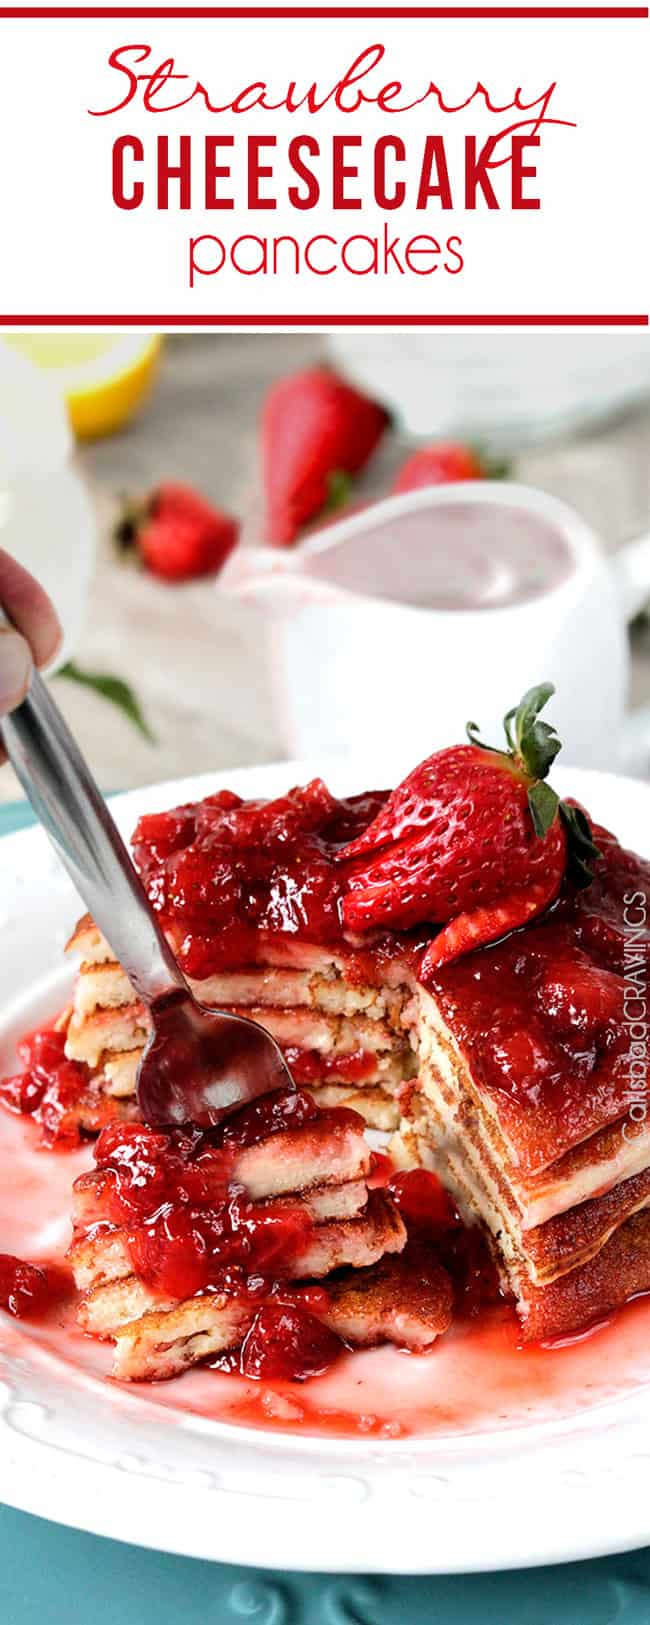 Strawberry-Cheesecake-Pancakes-main3